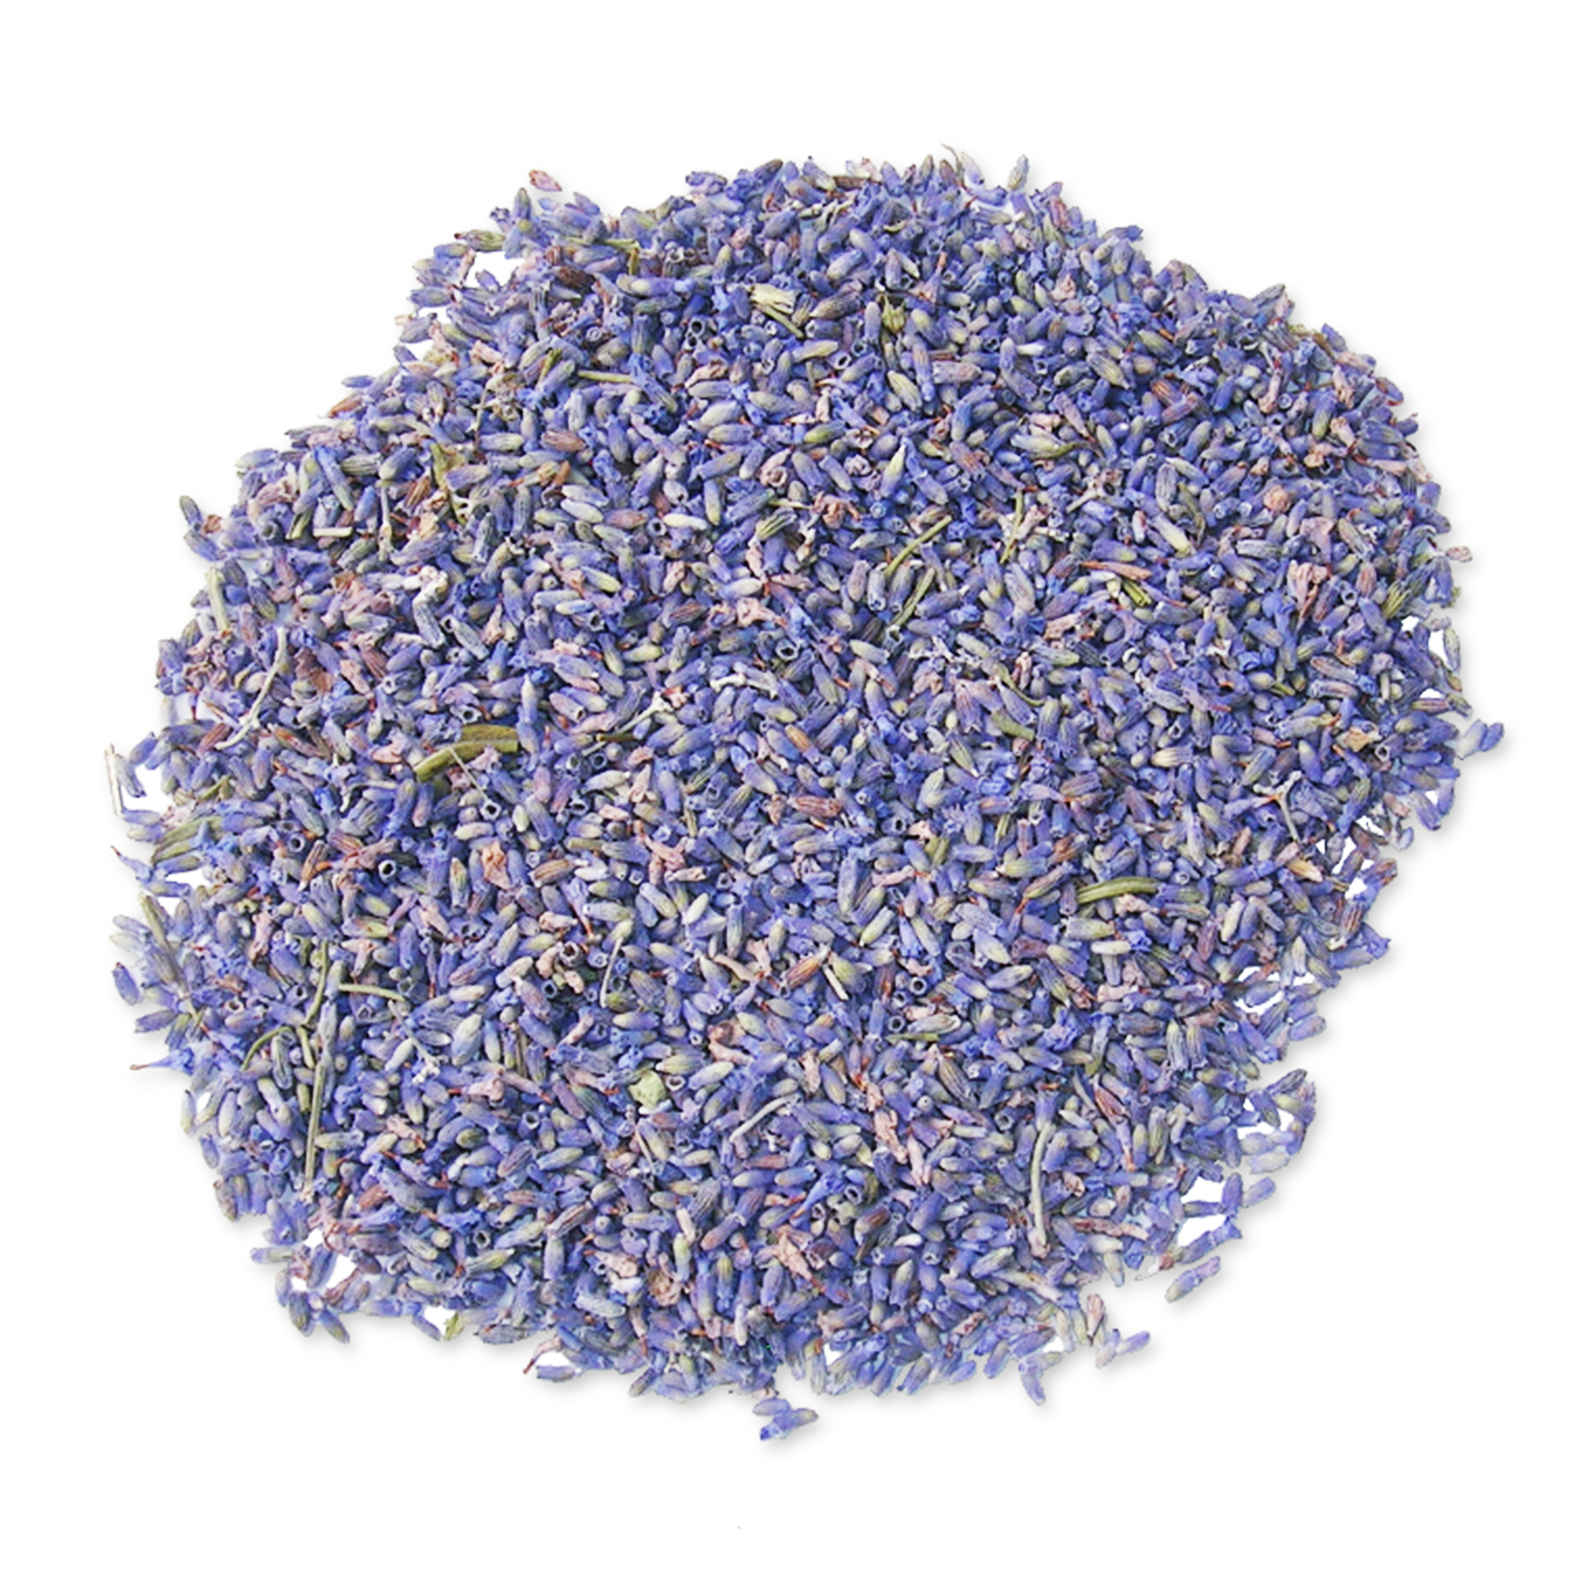 Lavanda Ibrida - Spezia - 50gr - Ingrediente per Cocktail di Altissima Qualità